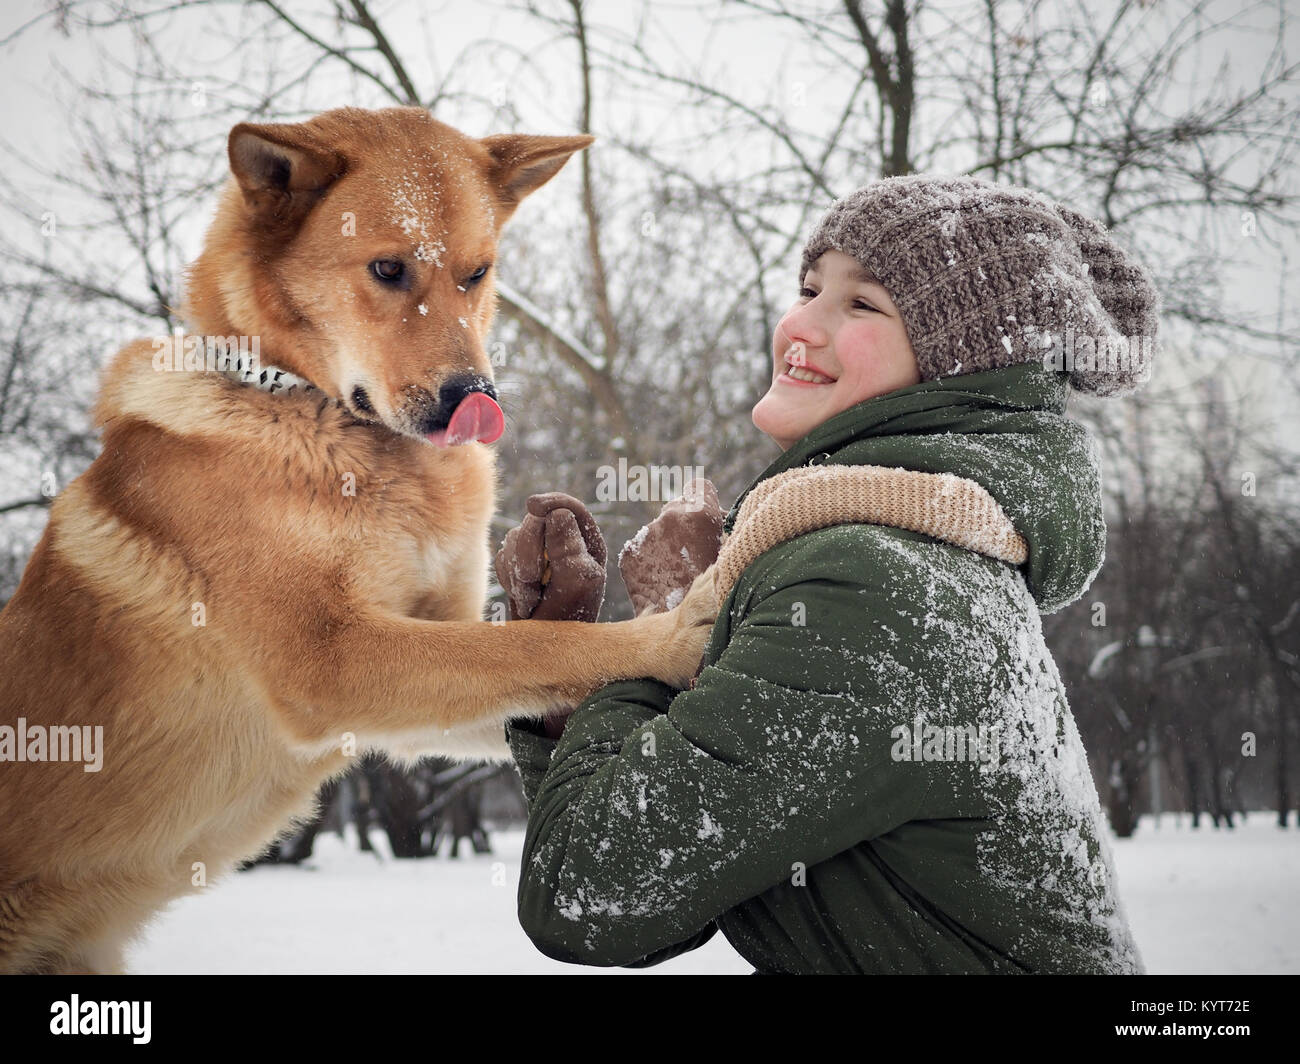 65dc4fe0ce9 People Playing With Pet Dog In Snow Stock Photos   People Playing ...